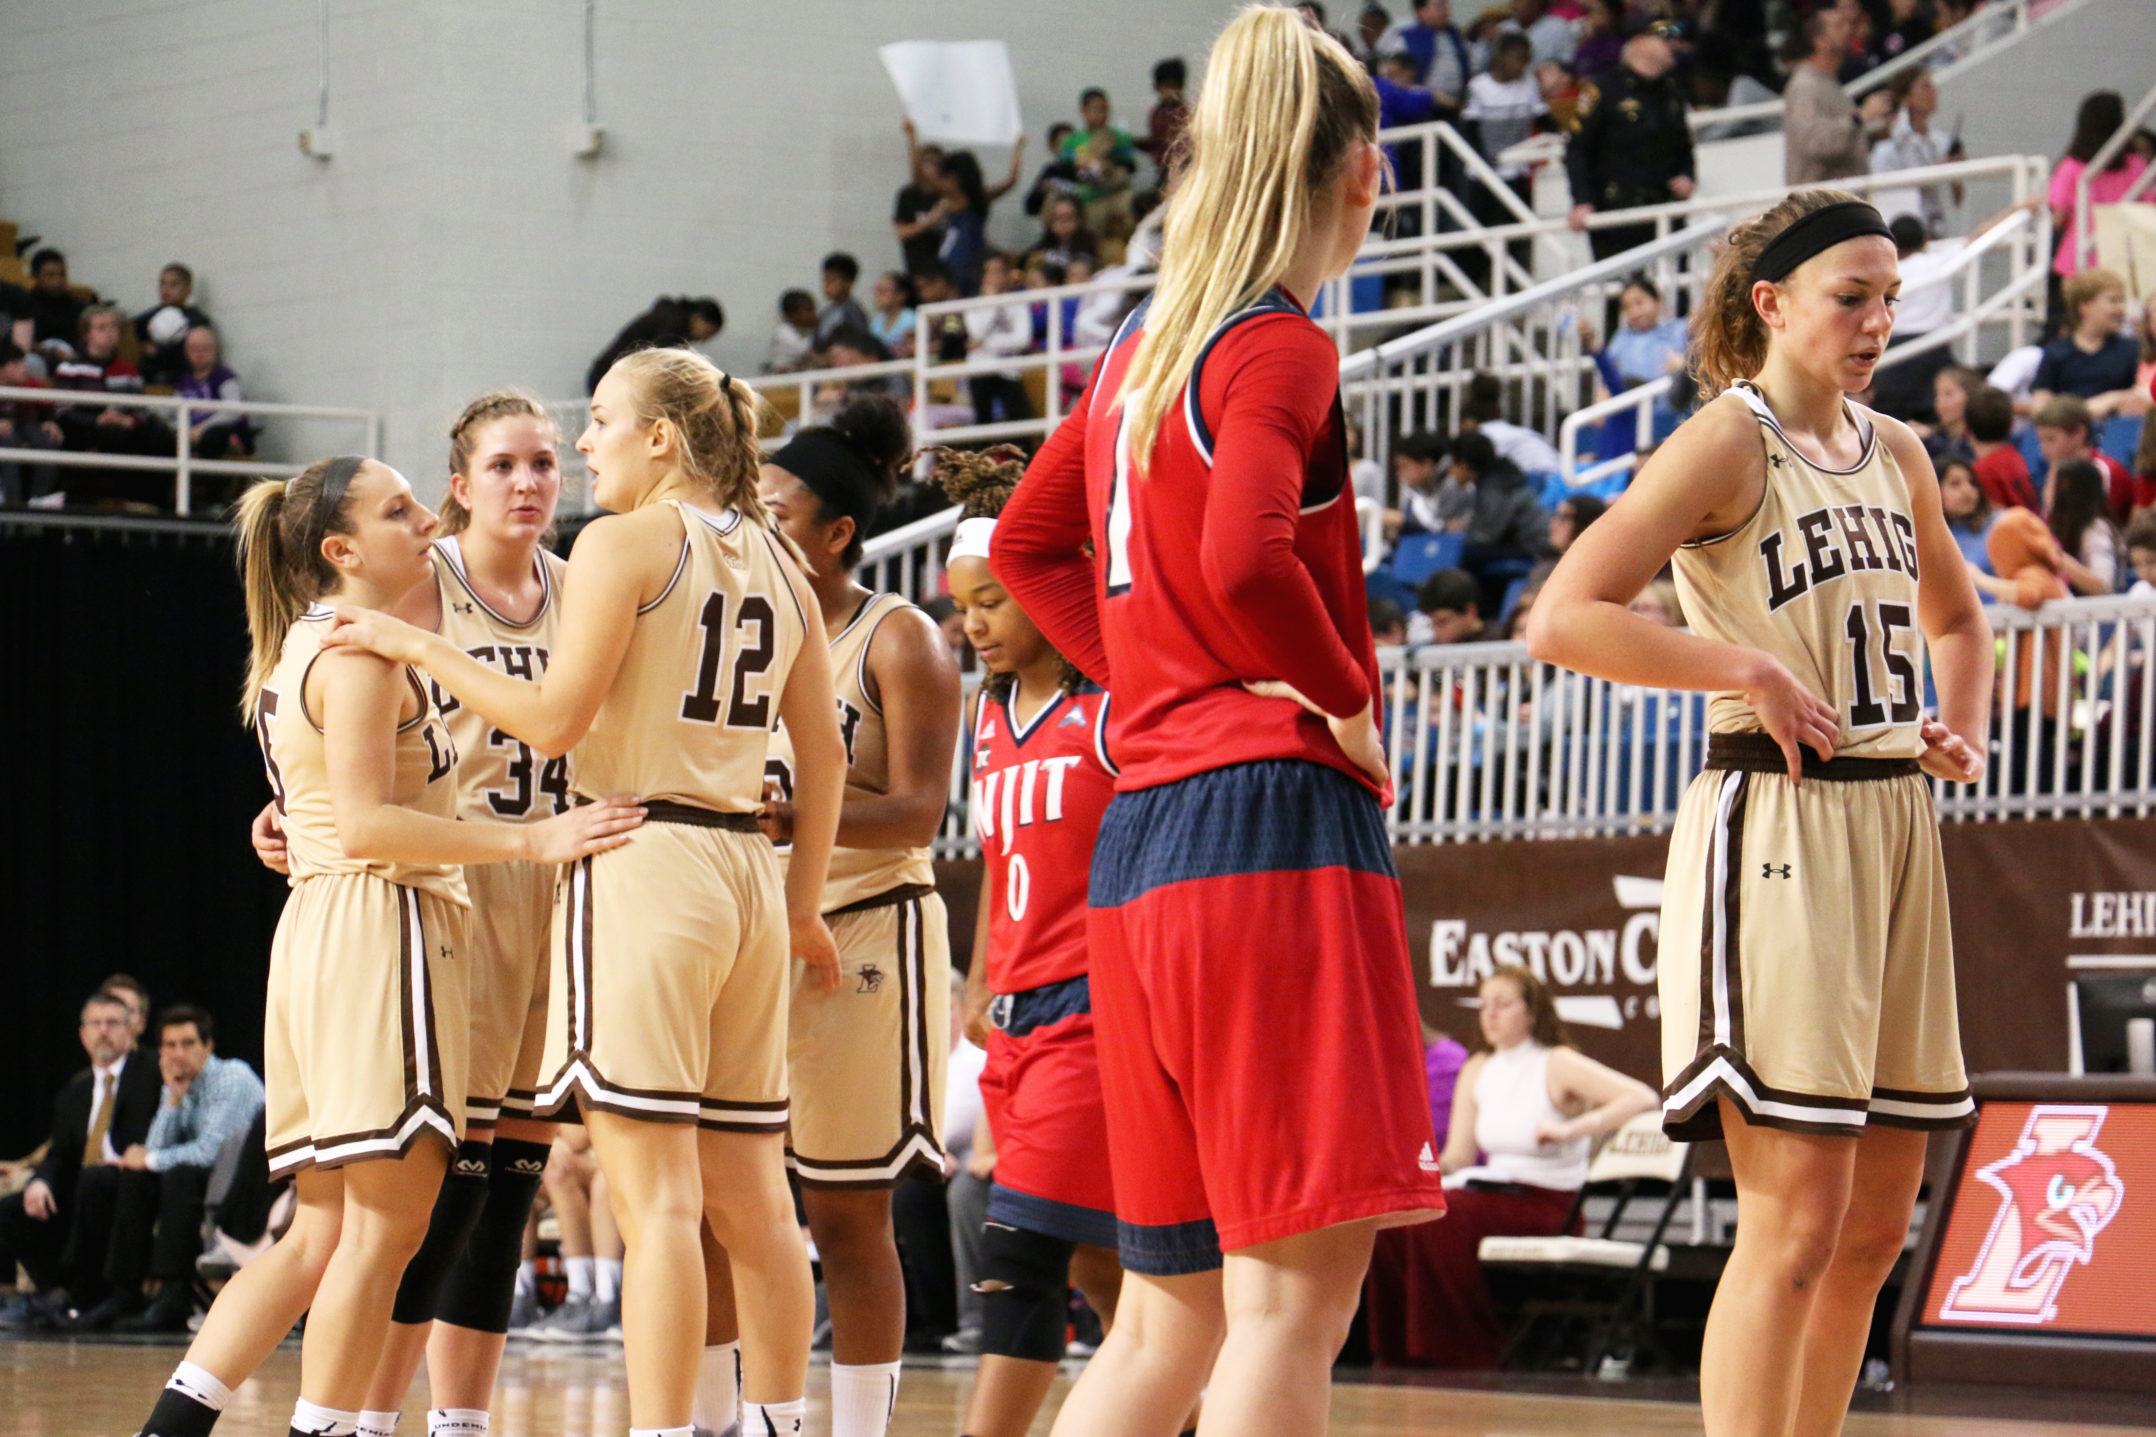 The Mountain Hawks huddle as sophomore guard Camryn Buhr prepares to take free throw shots at Stabler Arena Wednesday morning. Buhr shot a total of 7 points and recorded 3 assists against the NJIT Highlanders (Maddy Hite/B&W Staff)